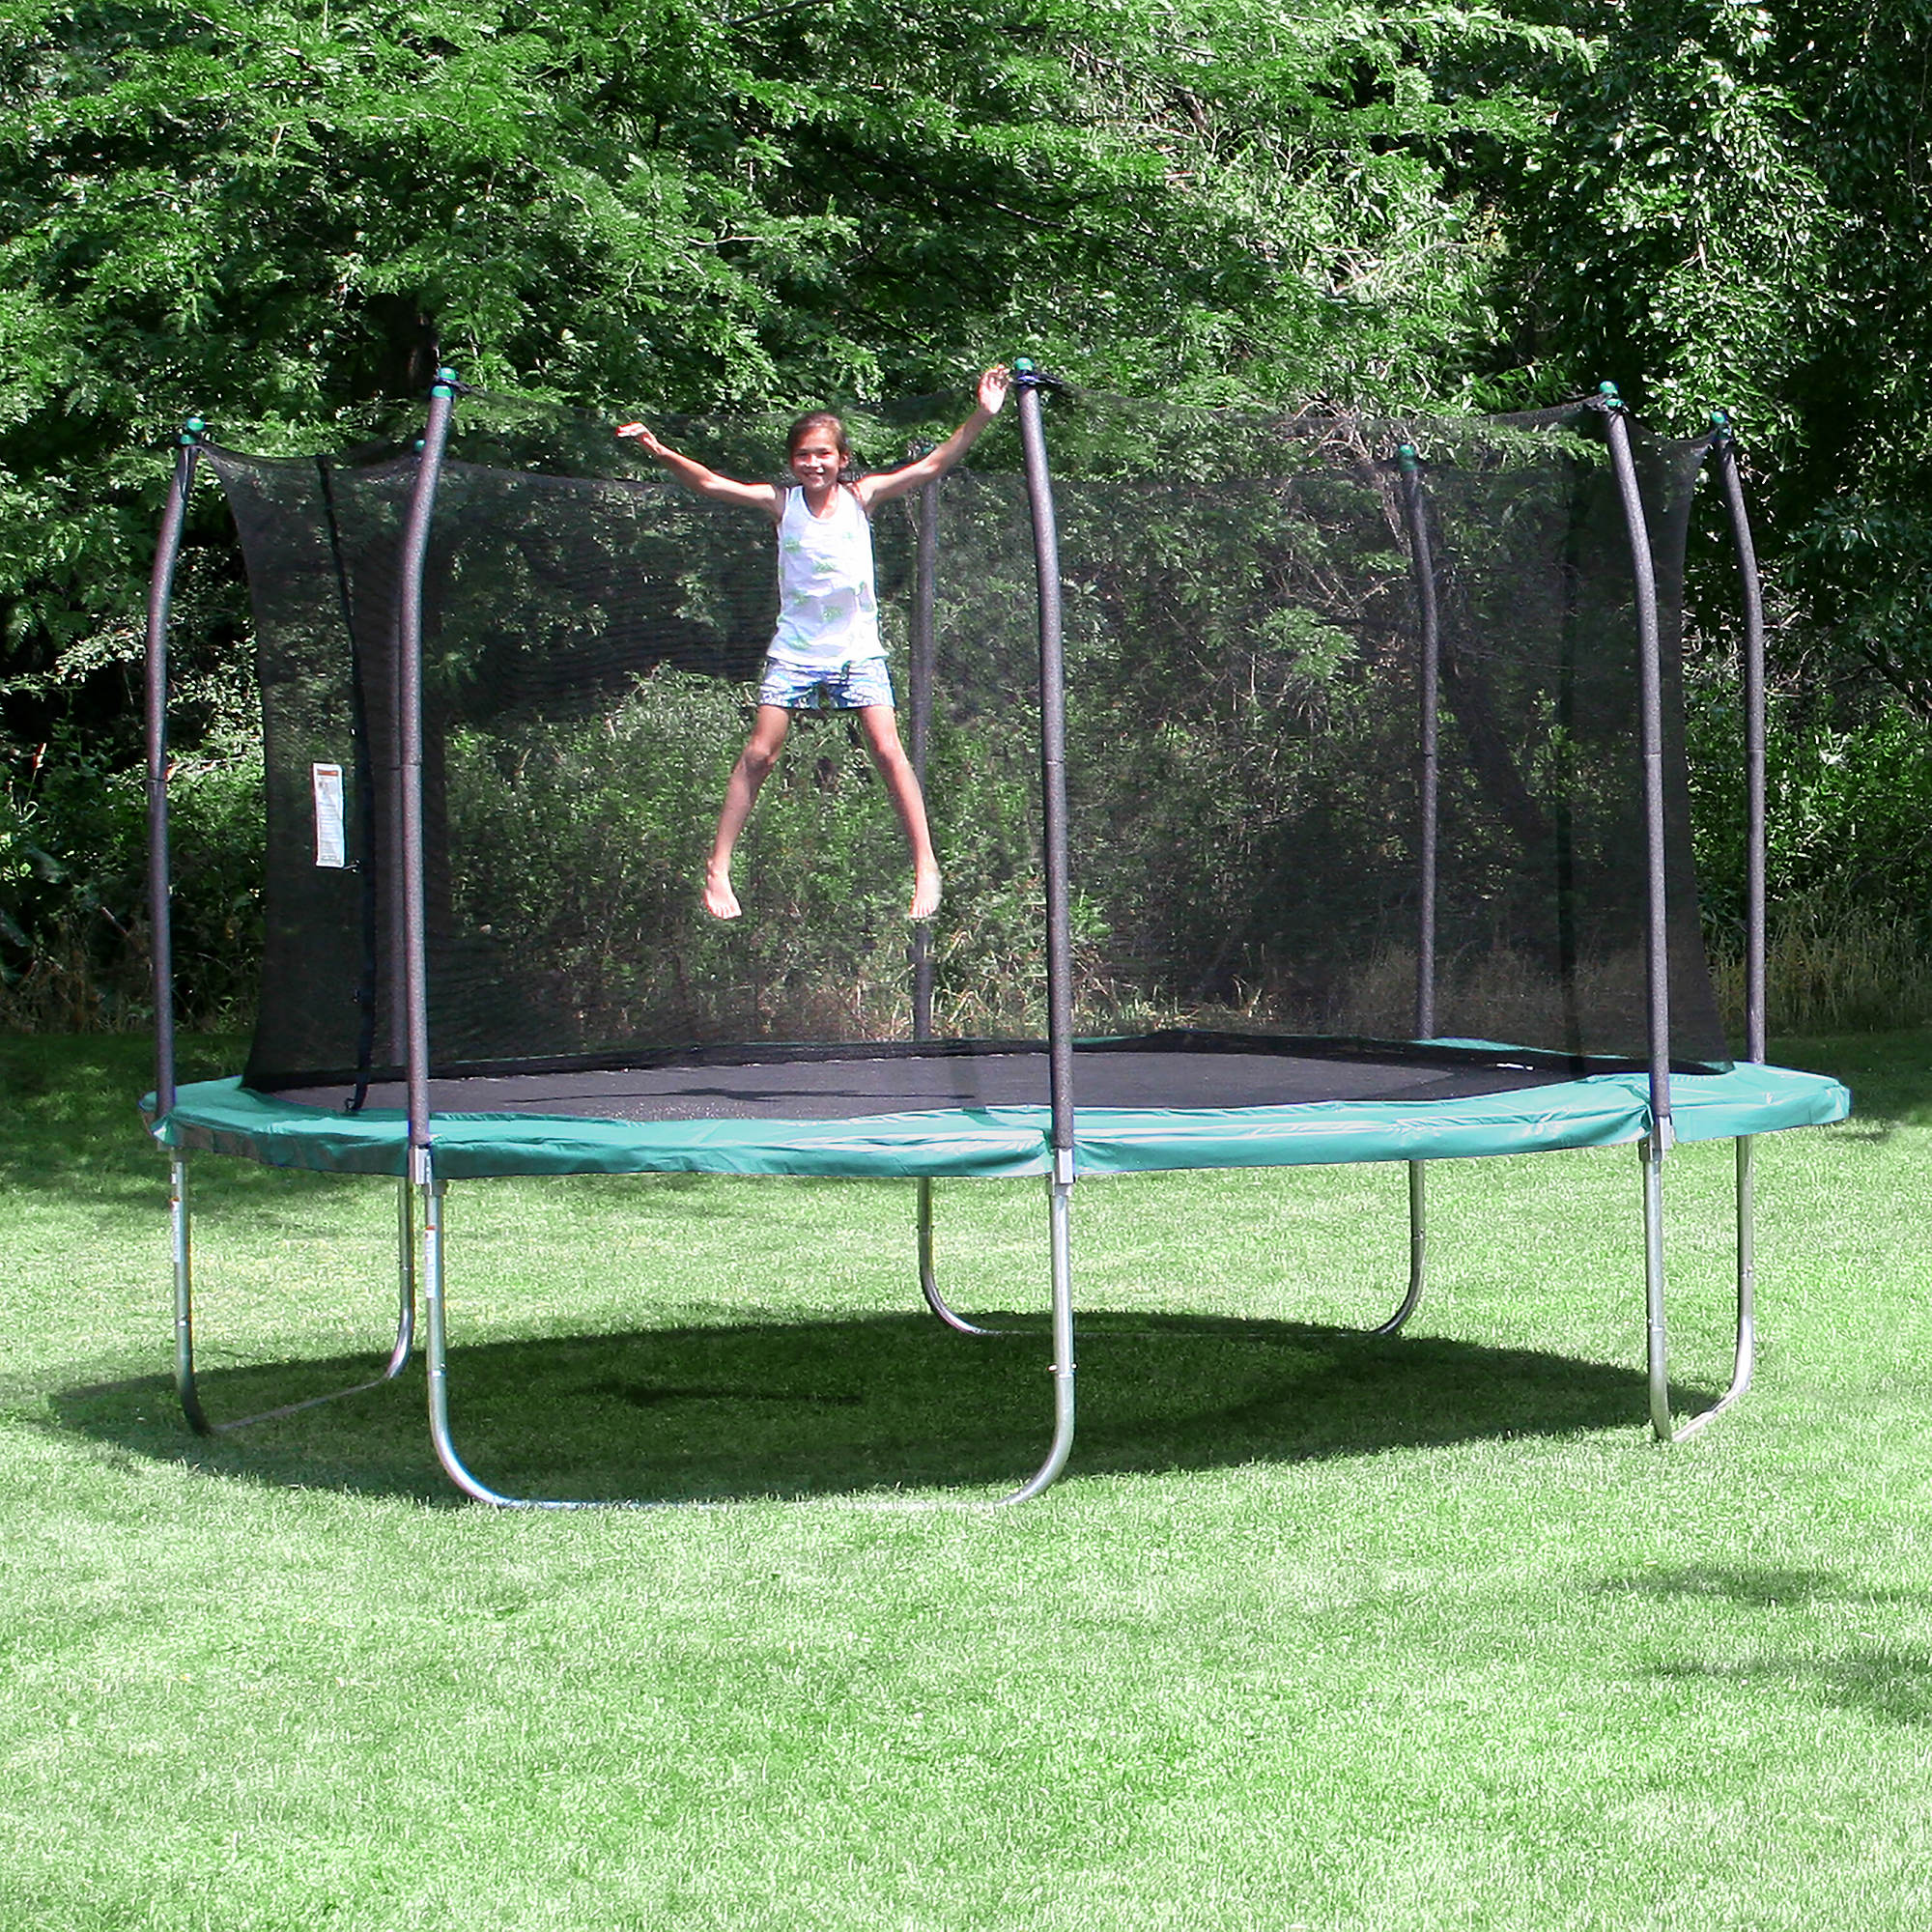 Skywalker Trampolines 15 Square Trampoline With Enclosure